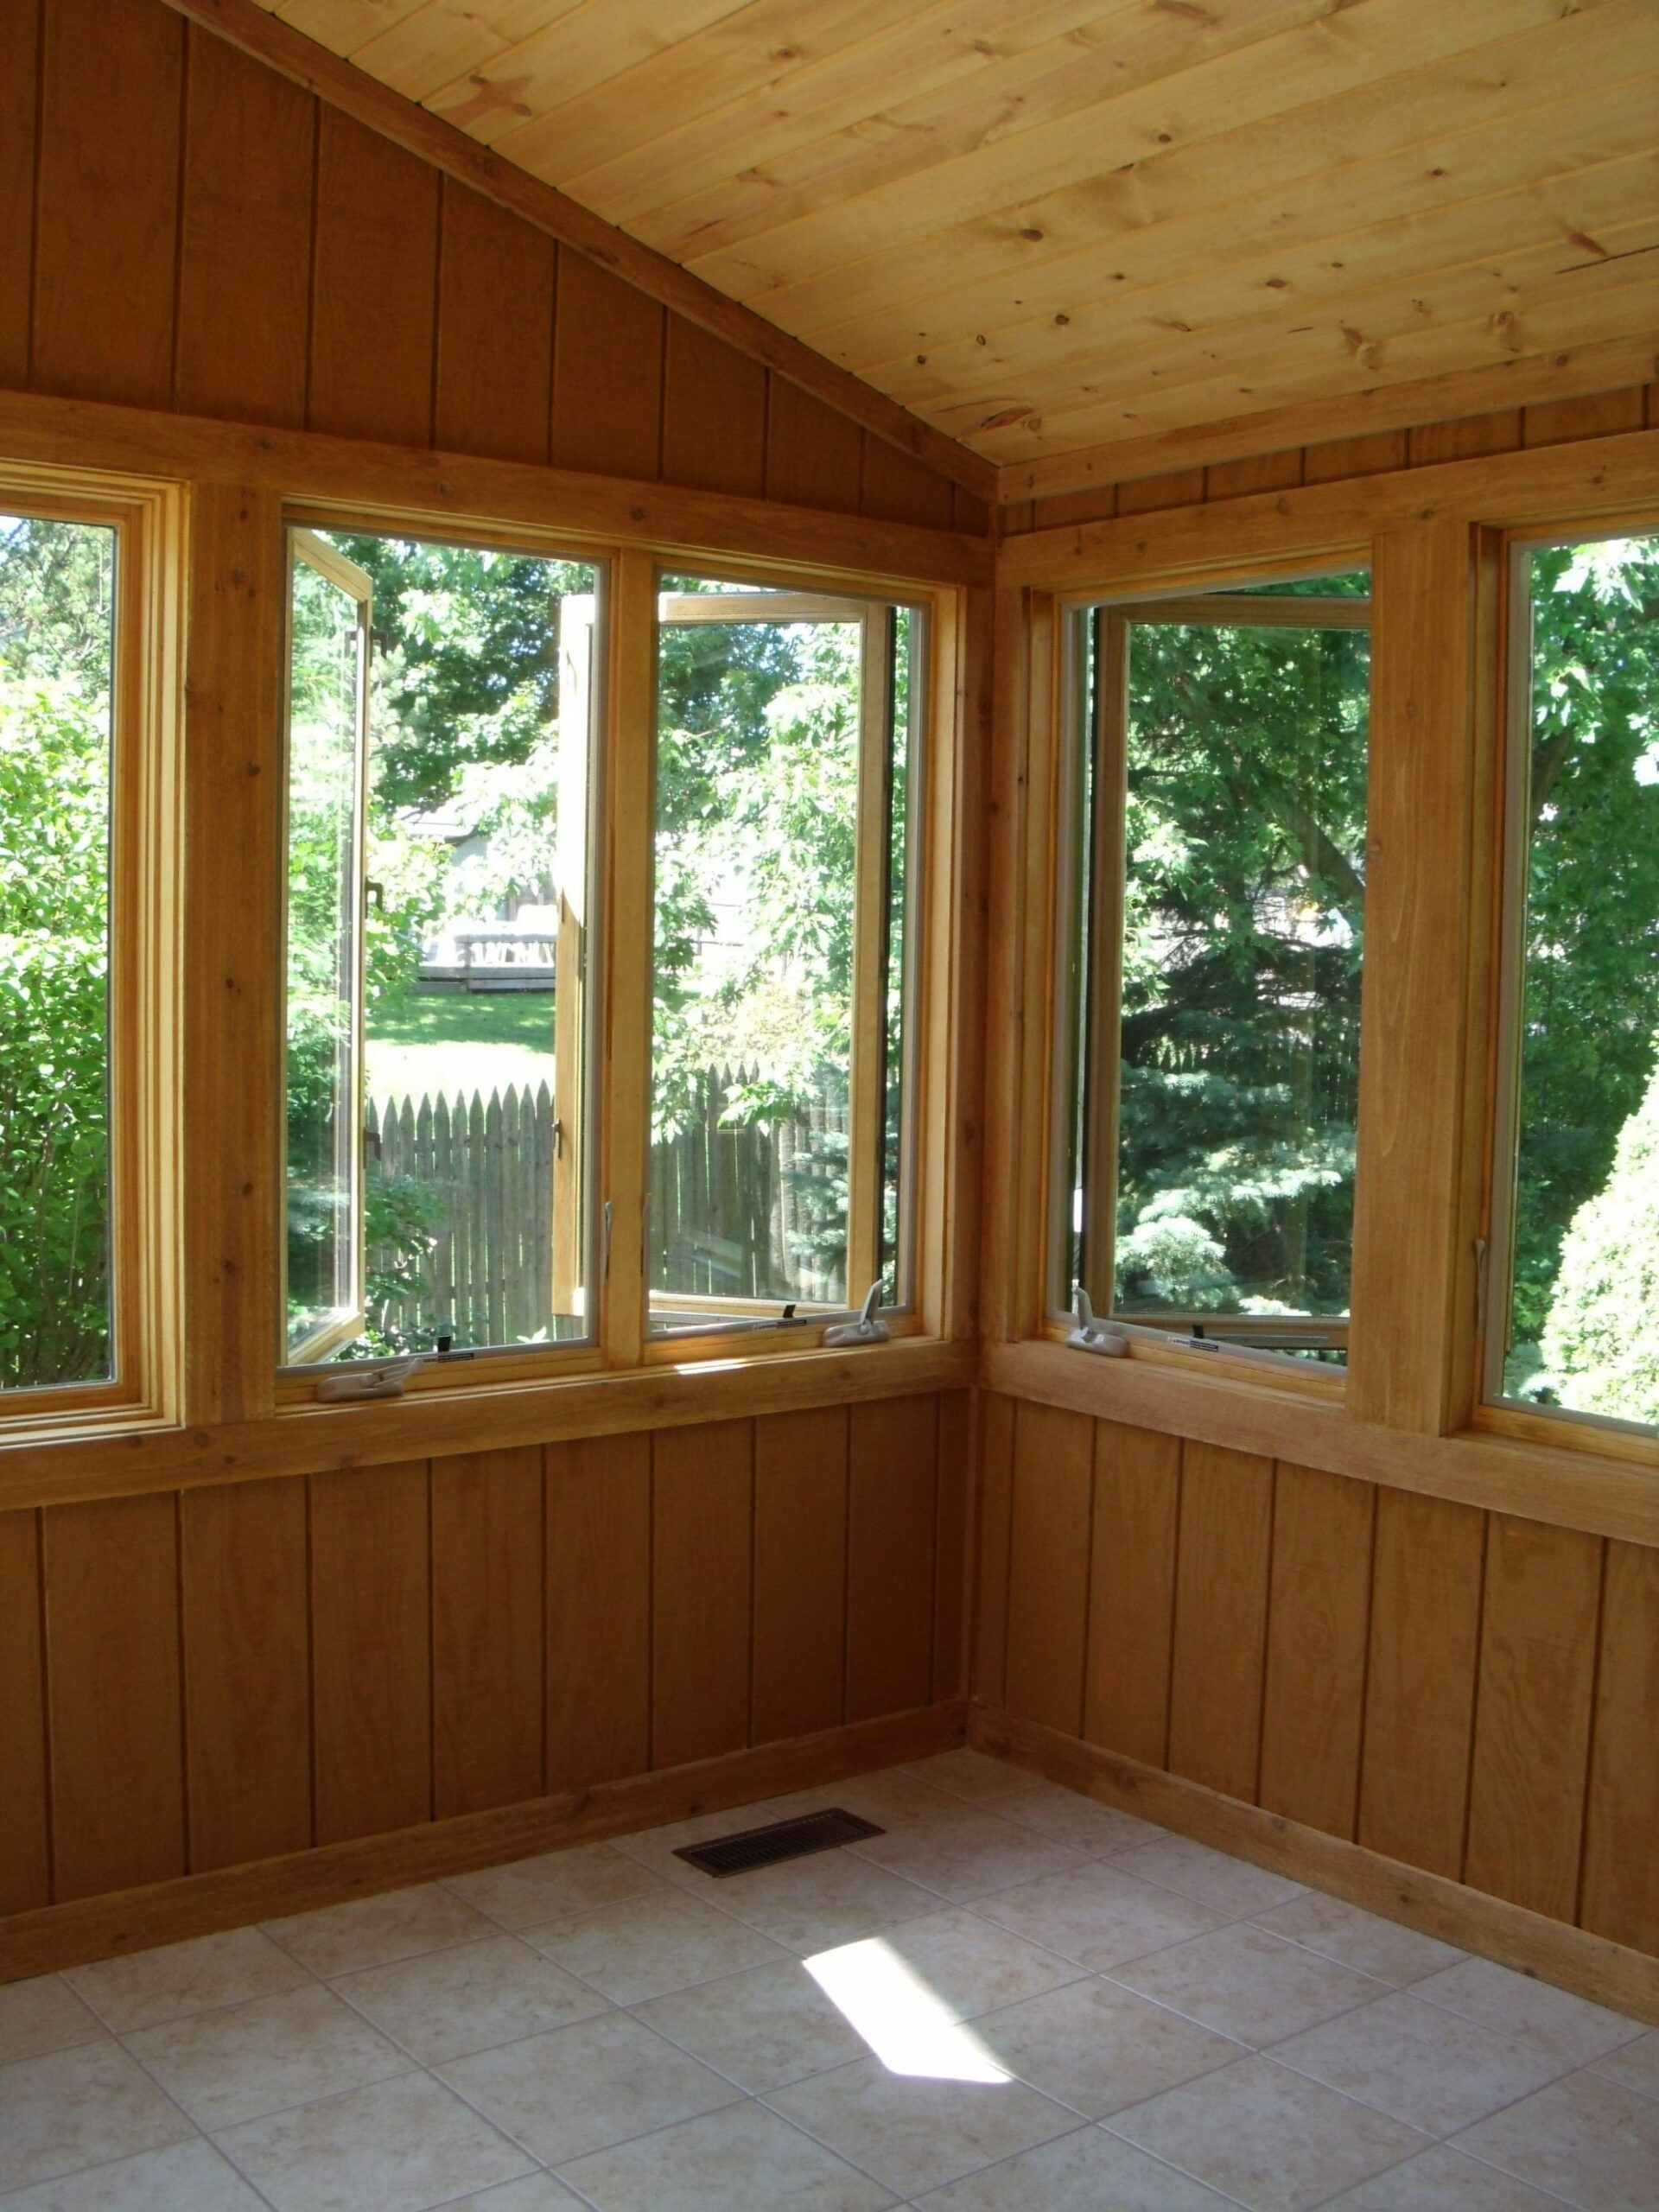 Finished conversion from screened porch to sunroom